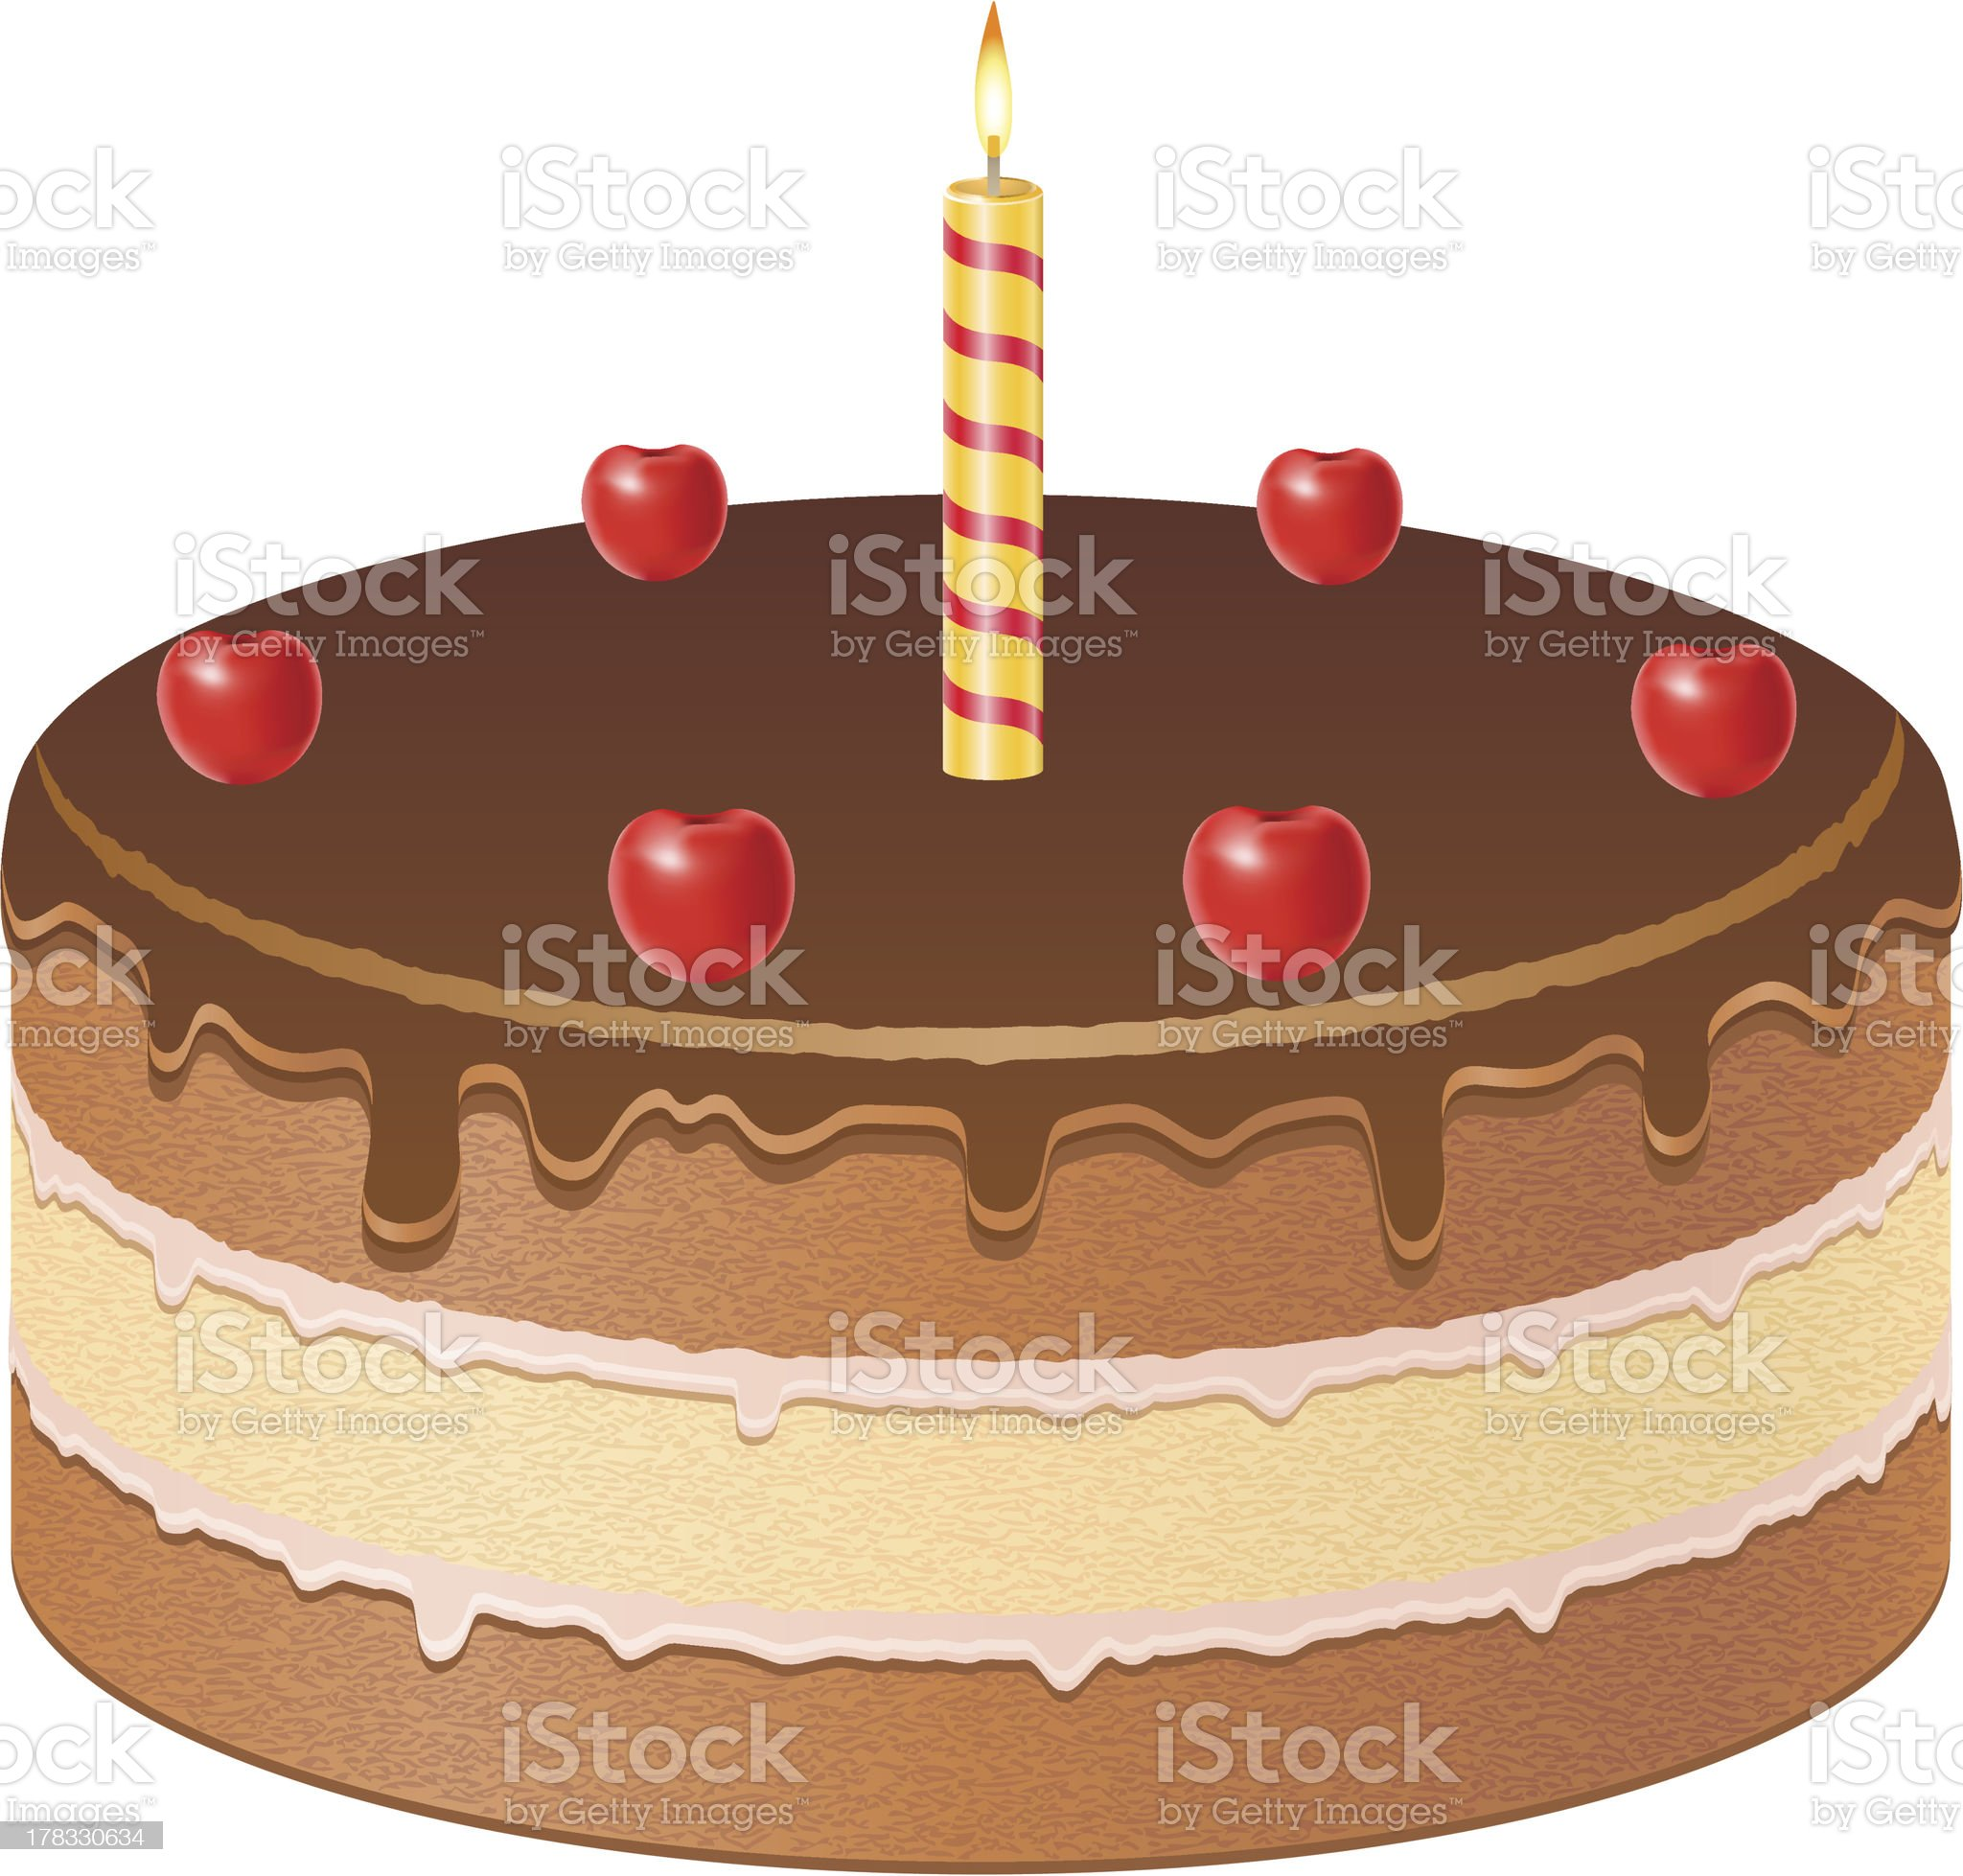 chocolate cake with cherries and burning candle vector illustration royalty-free stock vector art